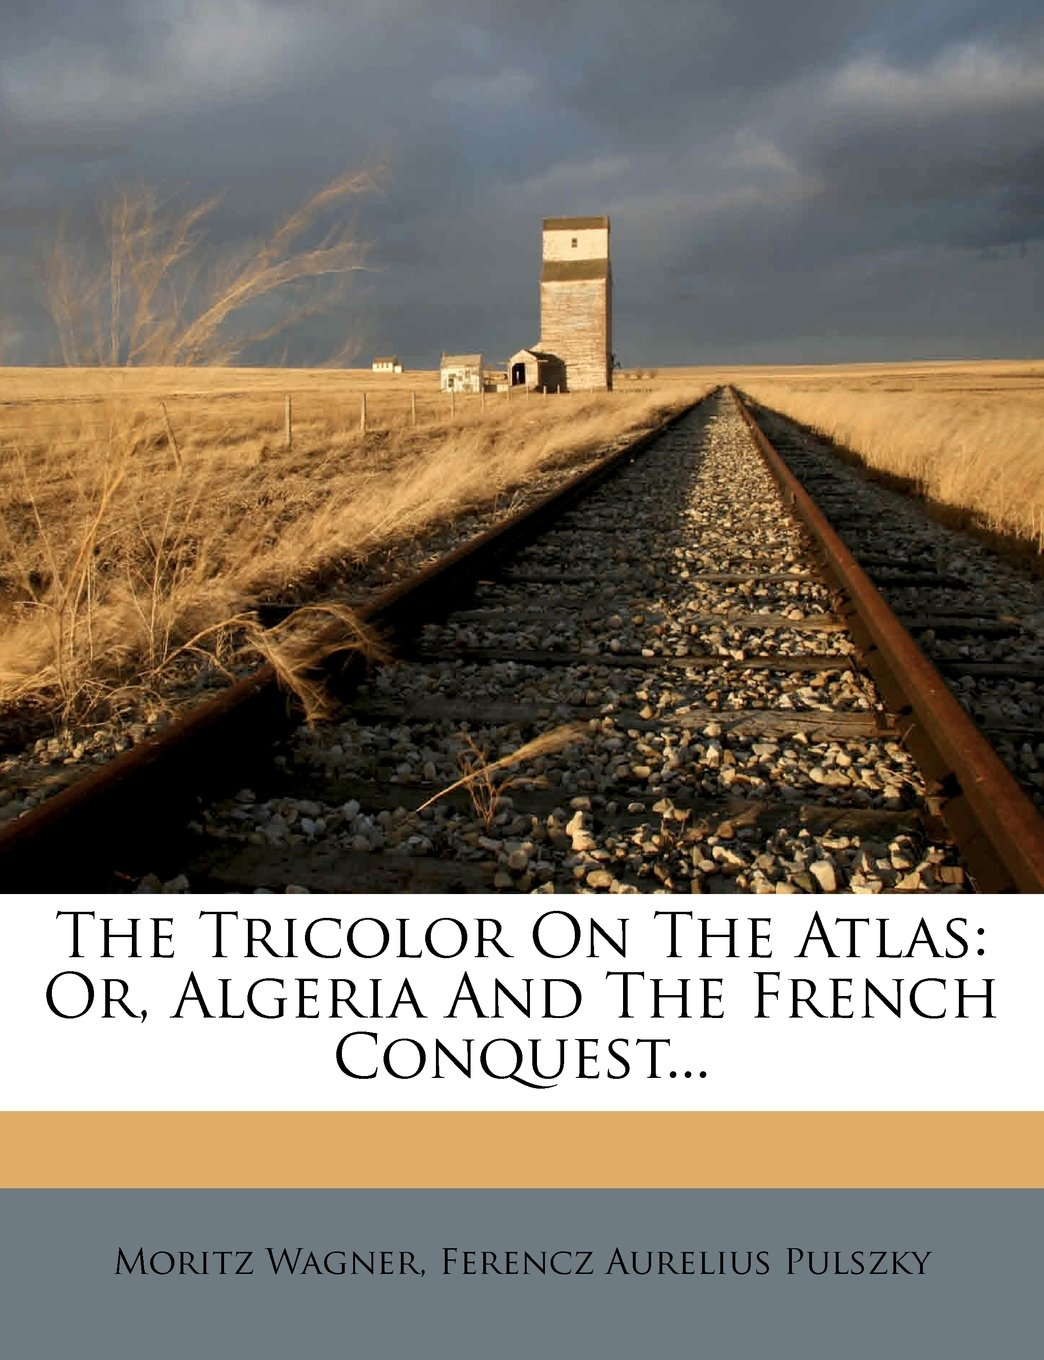 The Tricolor On The Atlas: Or, Algeria And The French Conquest...